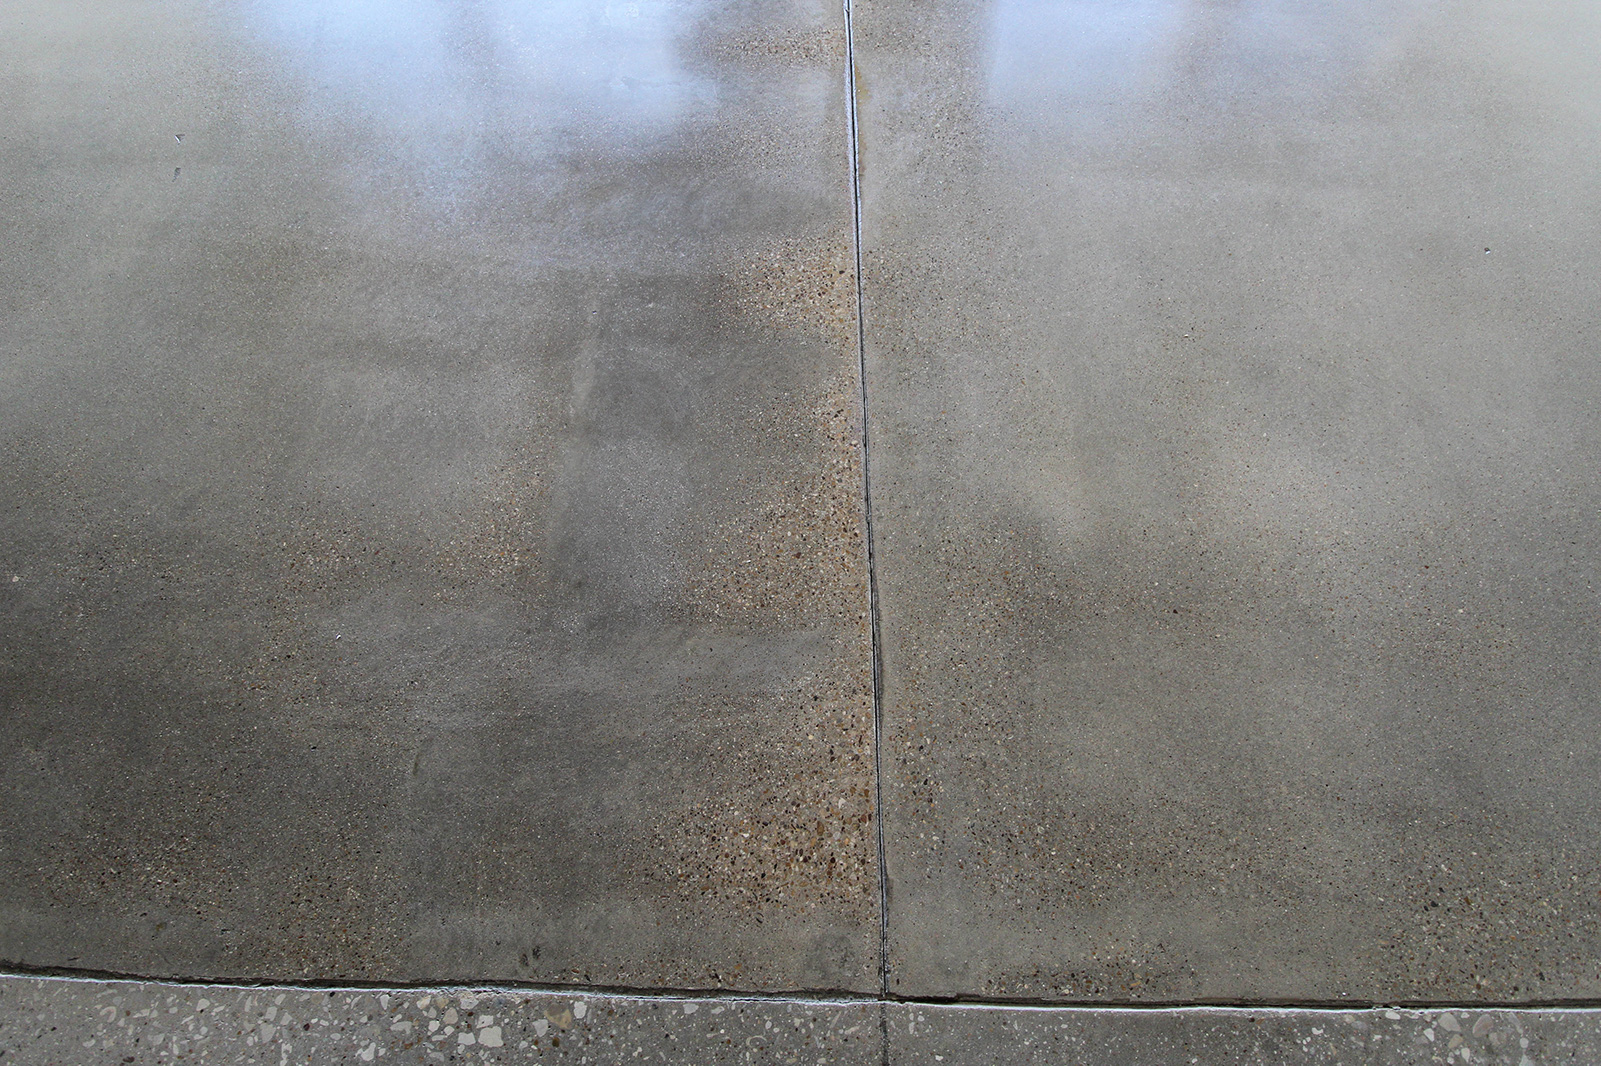 A Craftsman Concrete polished concrete floor. This slab was poured in 1924. Notice the inconsistent aggregate exposure that is characteristic of the hand worked concrete.